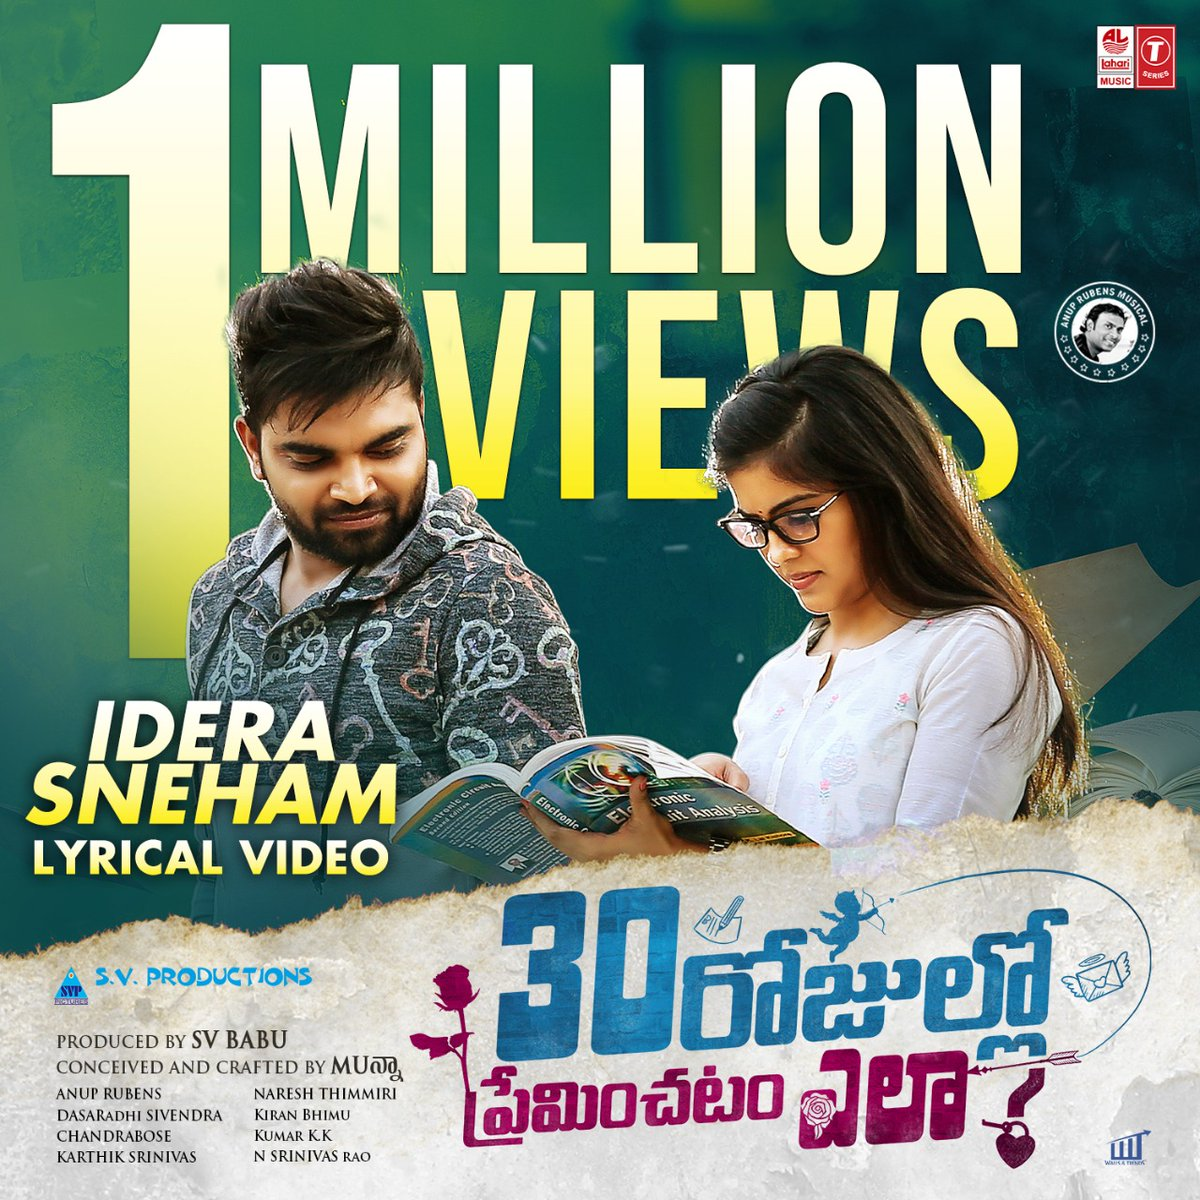 1 Million Views for #IderaSneham lyric video song From #30RojulloPreminchadamEla movie.  @impradeepmachi @Actor_Amritha   Sung by @ArmaanMalik22 Music by @anuprubens  Lyrics by @boselyricist  @DirectorMunna1 @LahariMusic